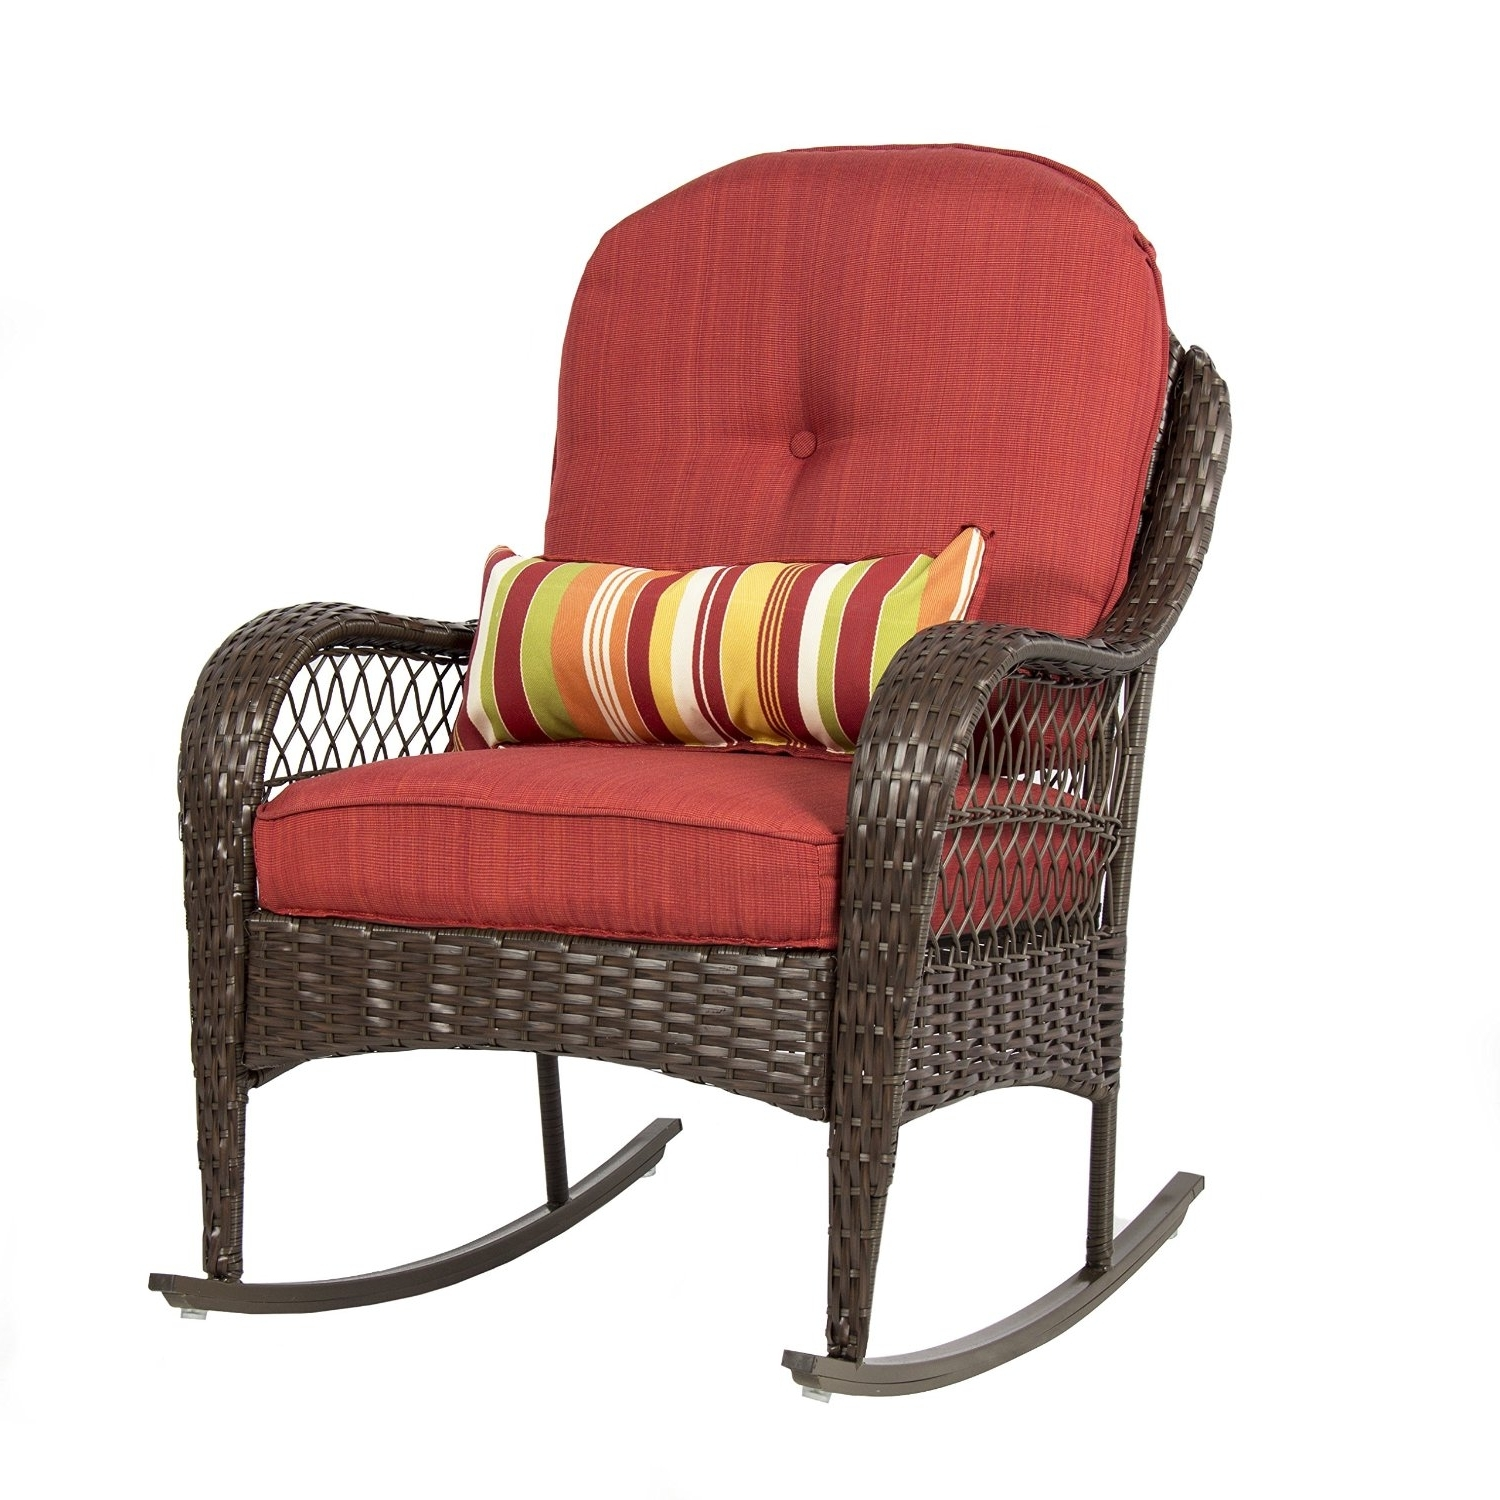 Best Choice Products Wicker Rocking Chair With Well Liked Outdoor Wicker Rocking Chairs With Cushions (View 10 of 15)